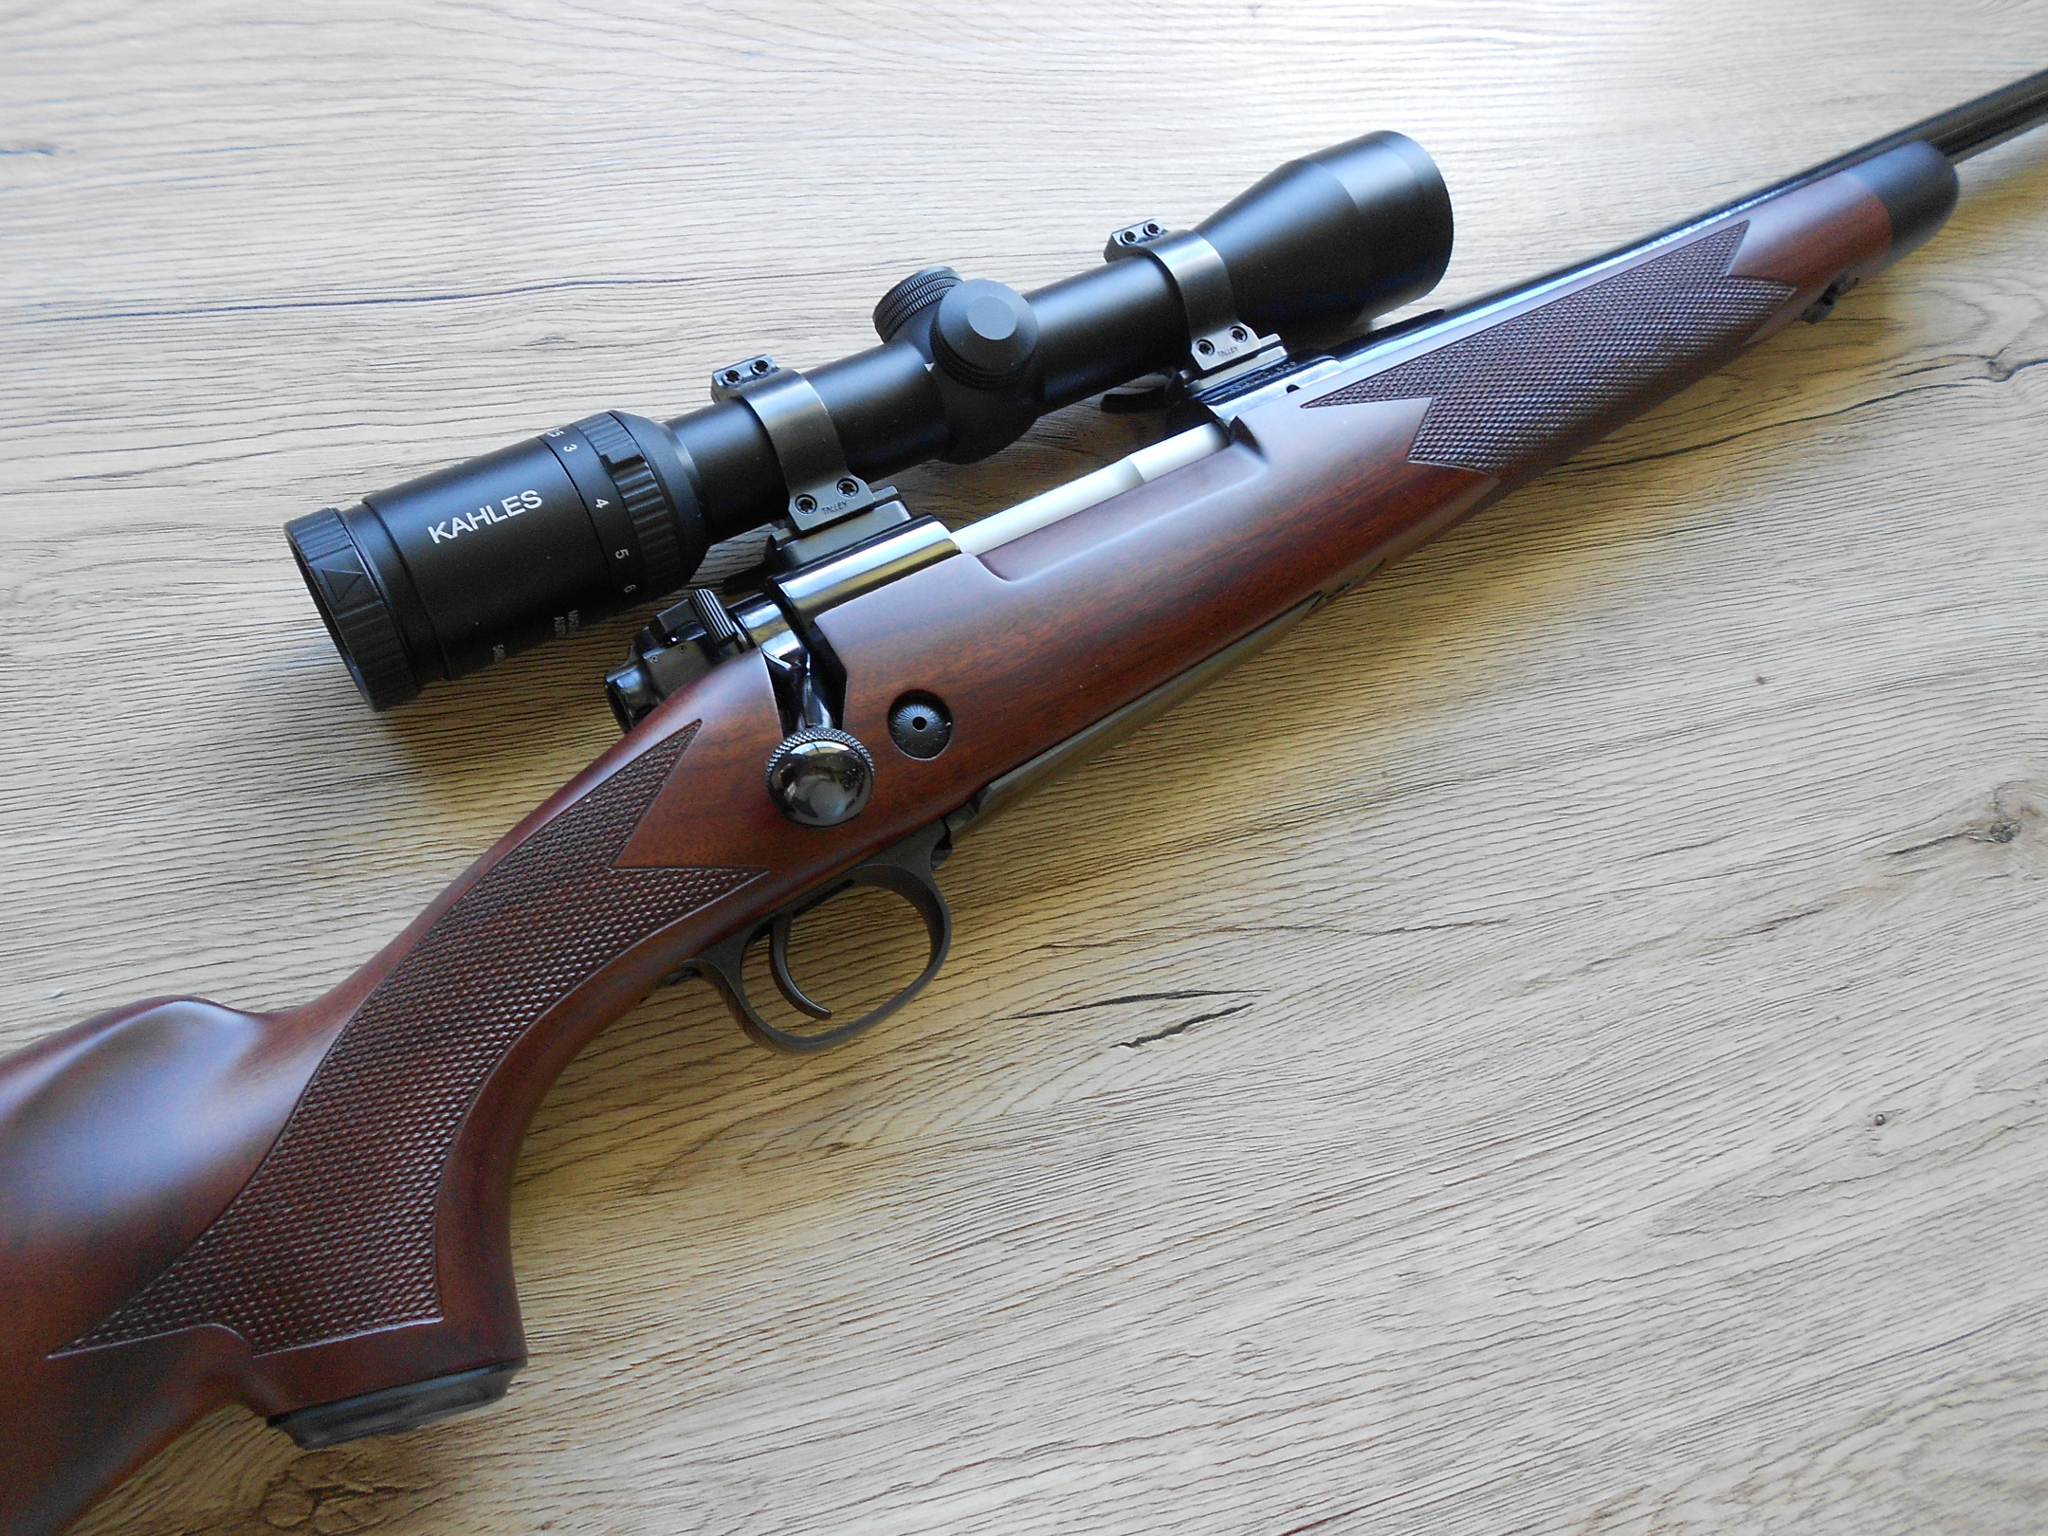 Winchester Model 70 Super Grade rifle current production.